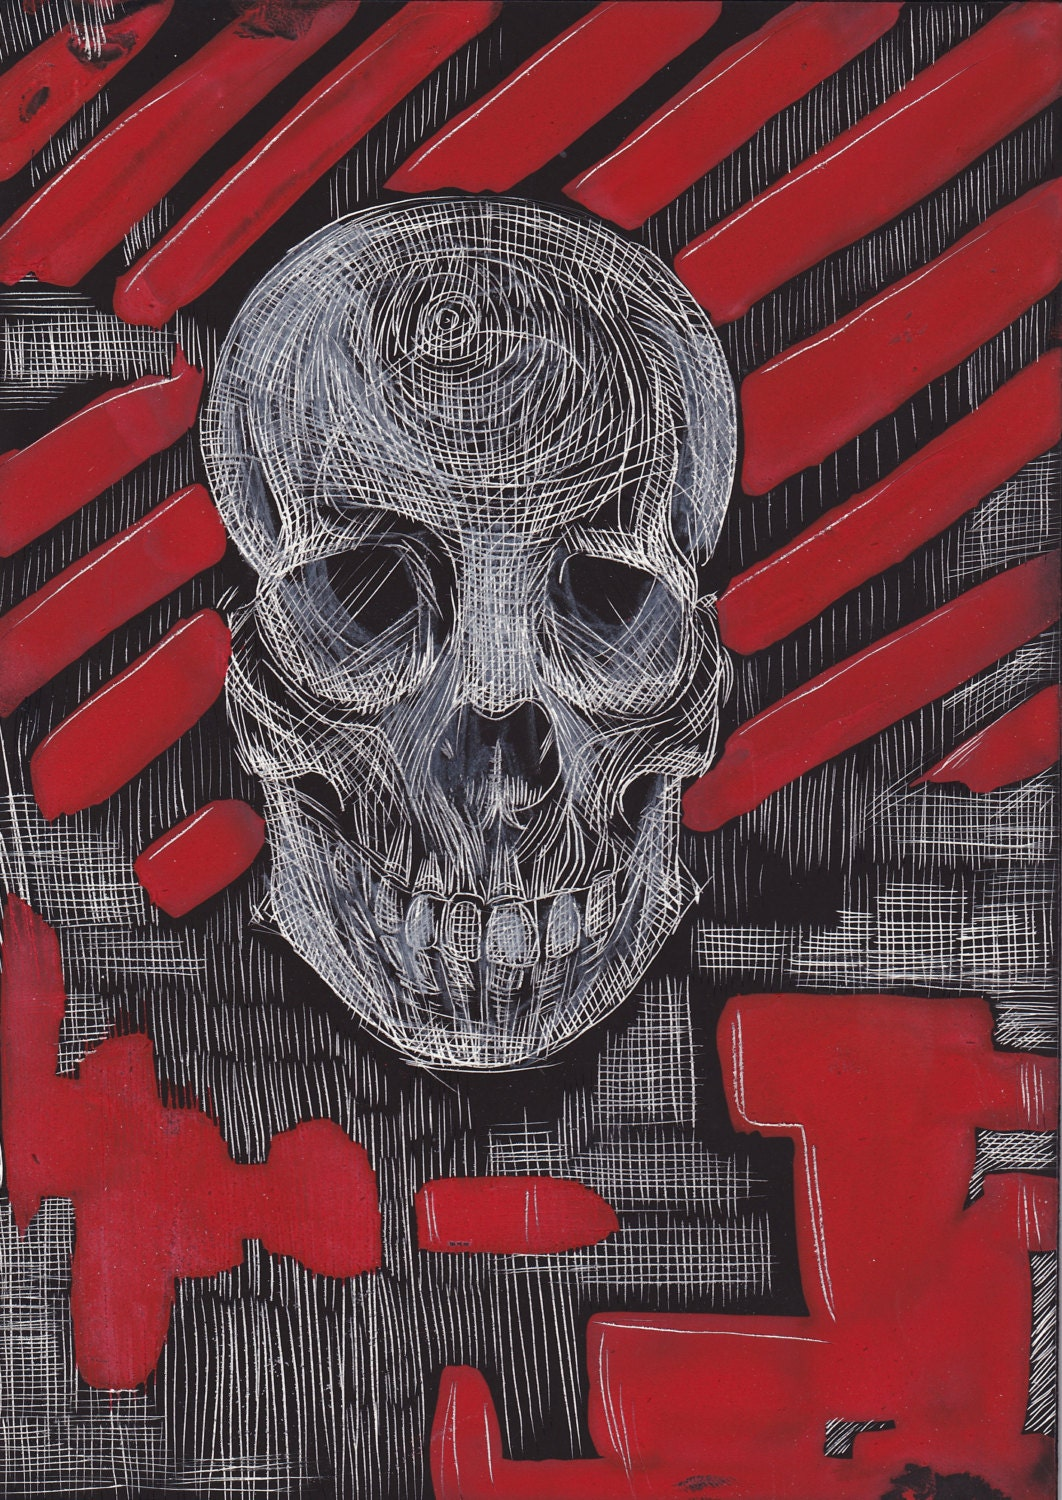 Skull & Red Stripes - Reproduction - AtomicAurora